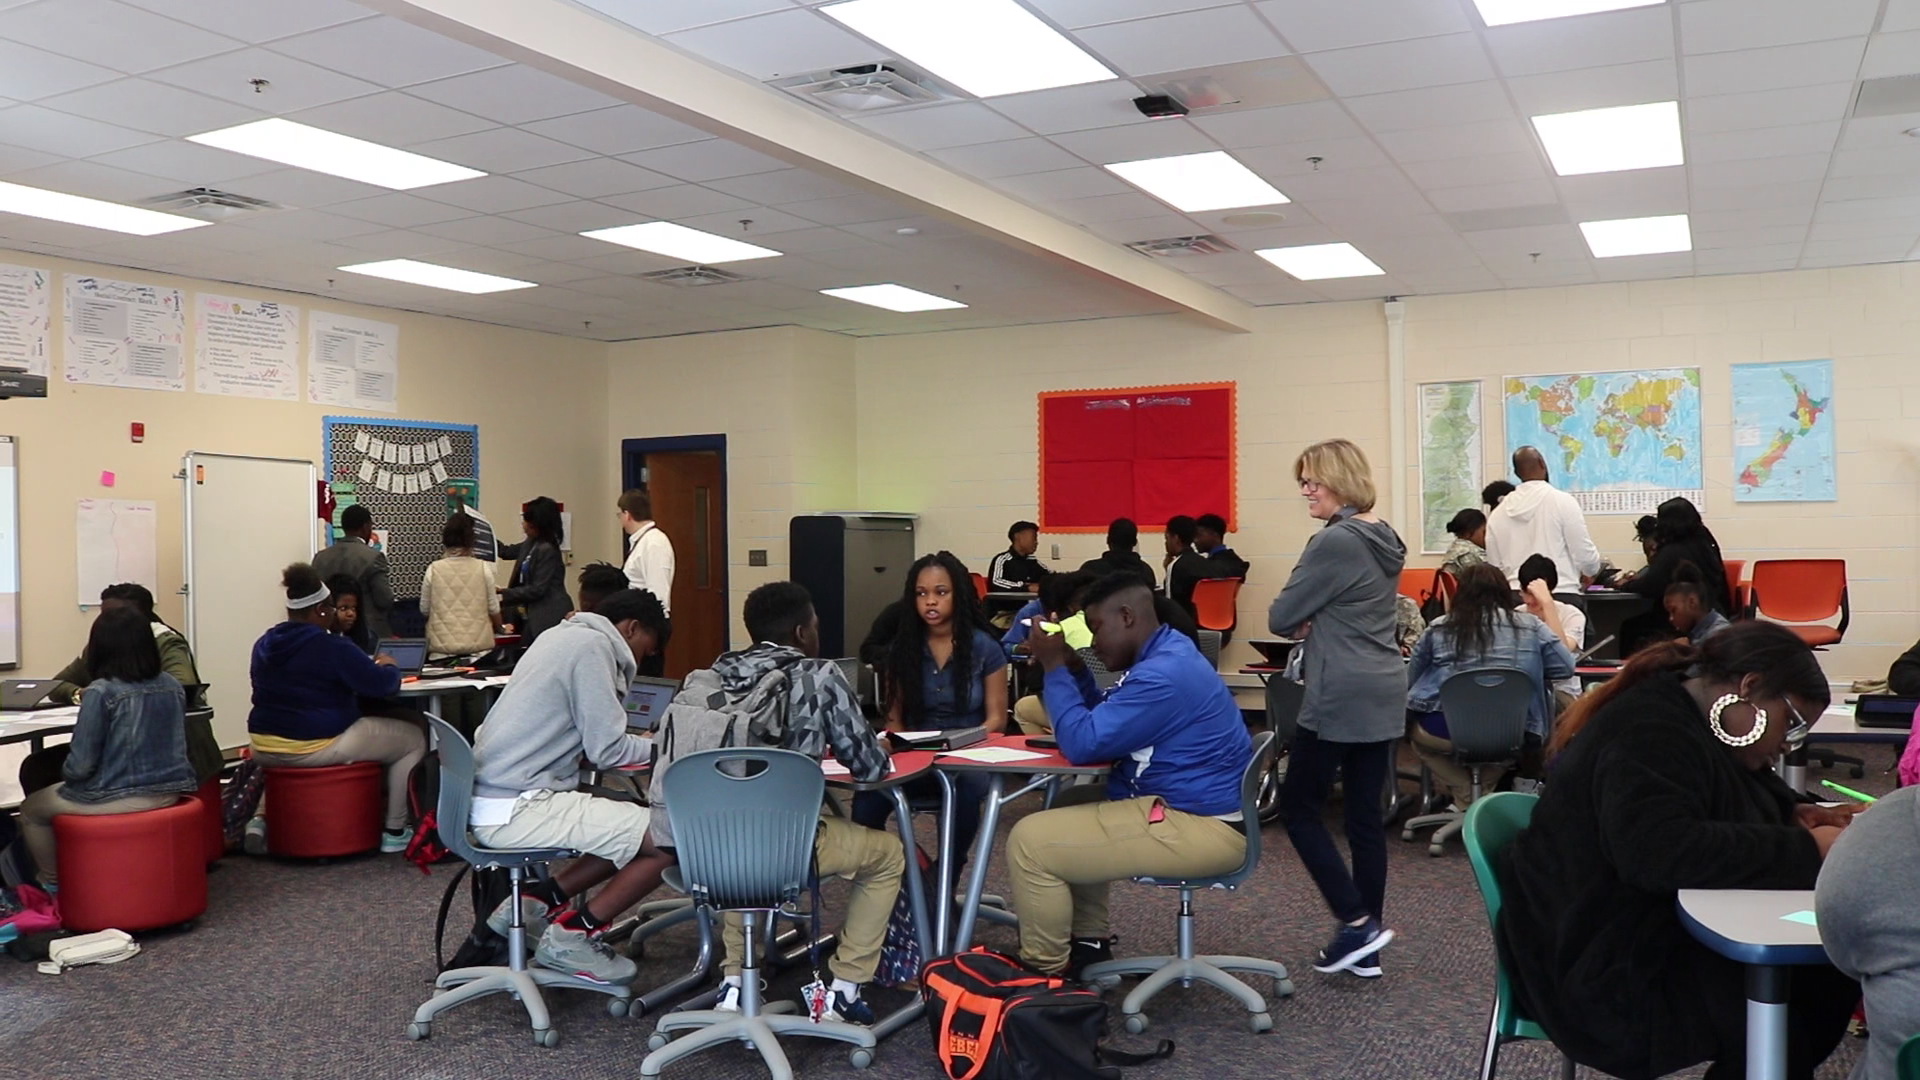 CCPL partners with Burke High School students on special project highlighting suppression of civil rights